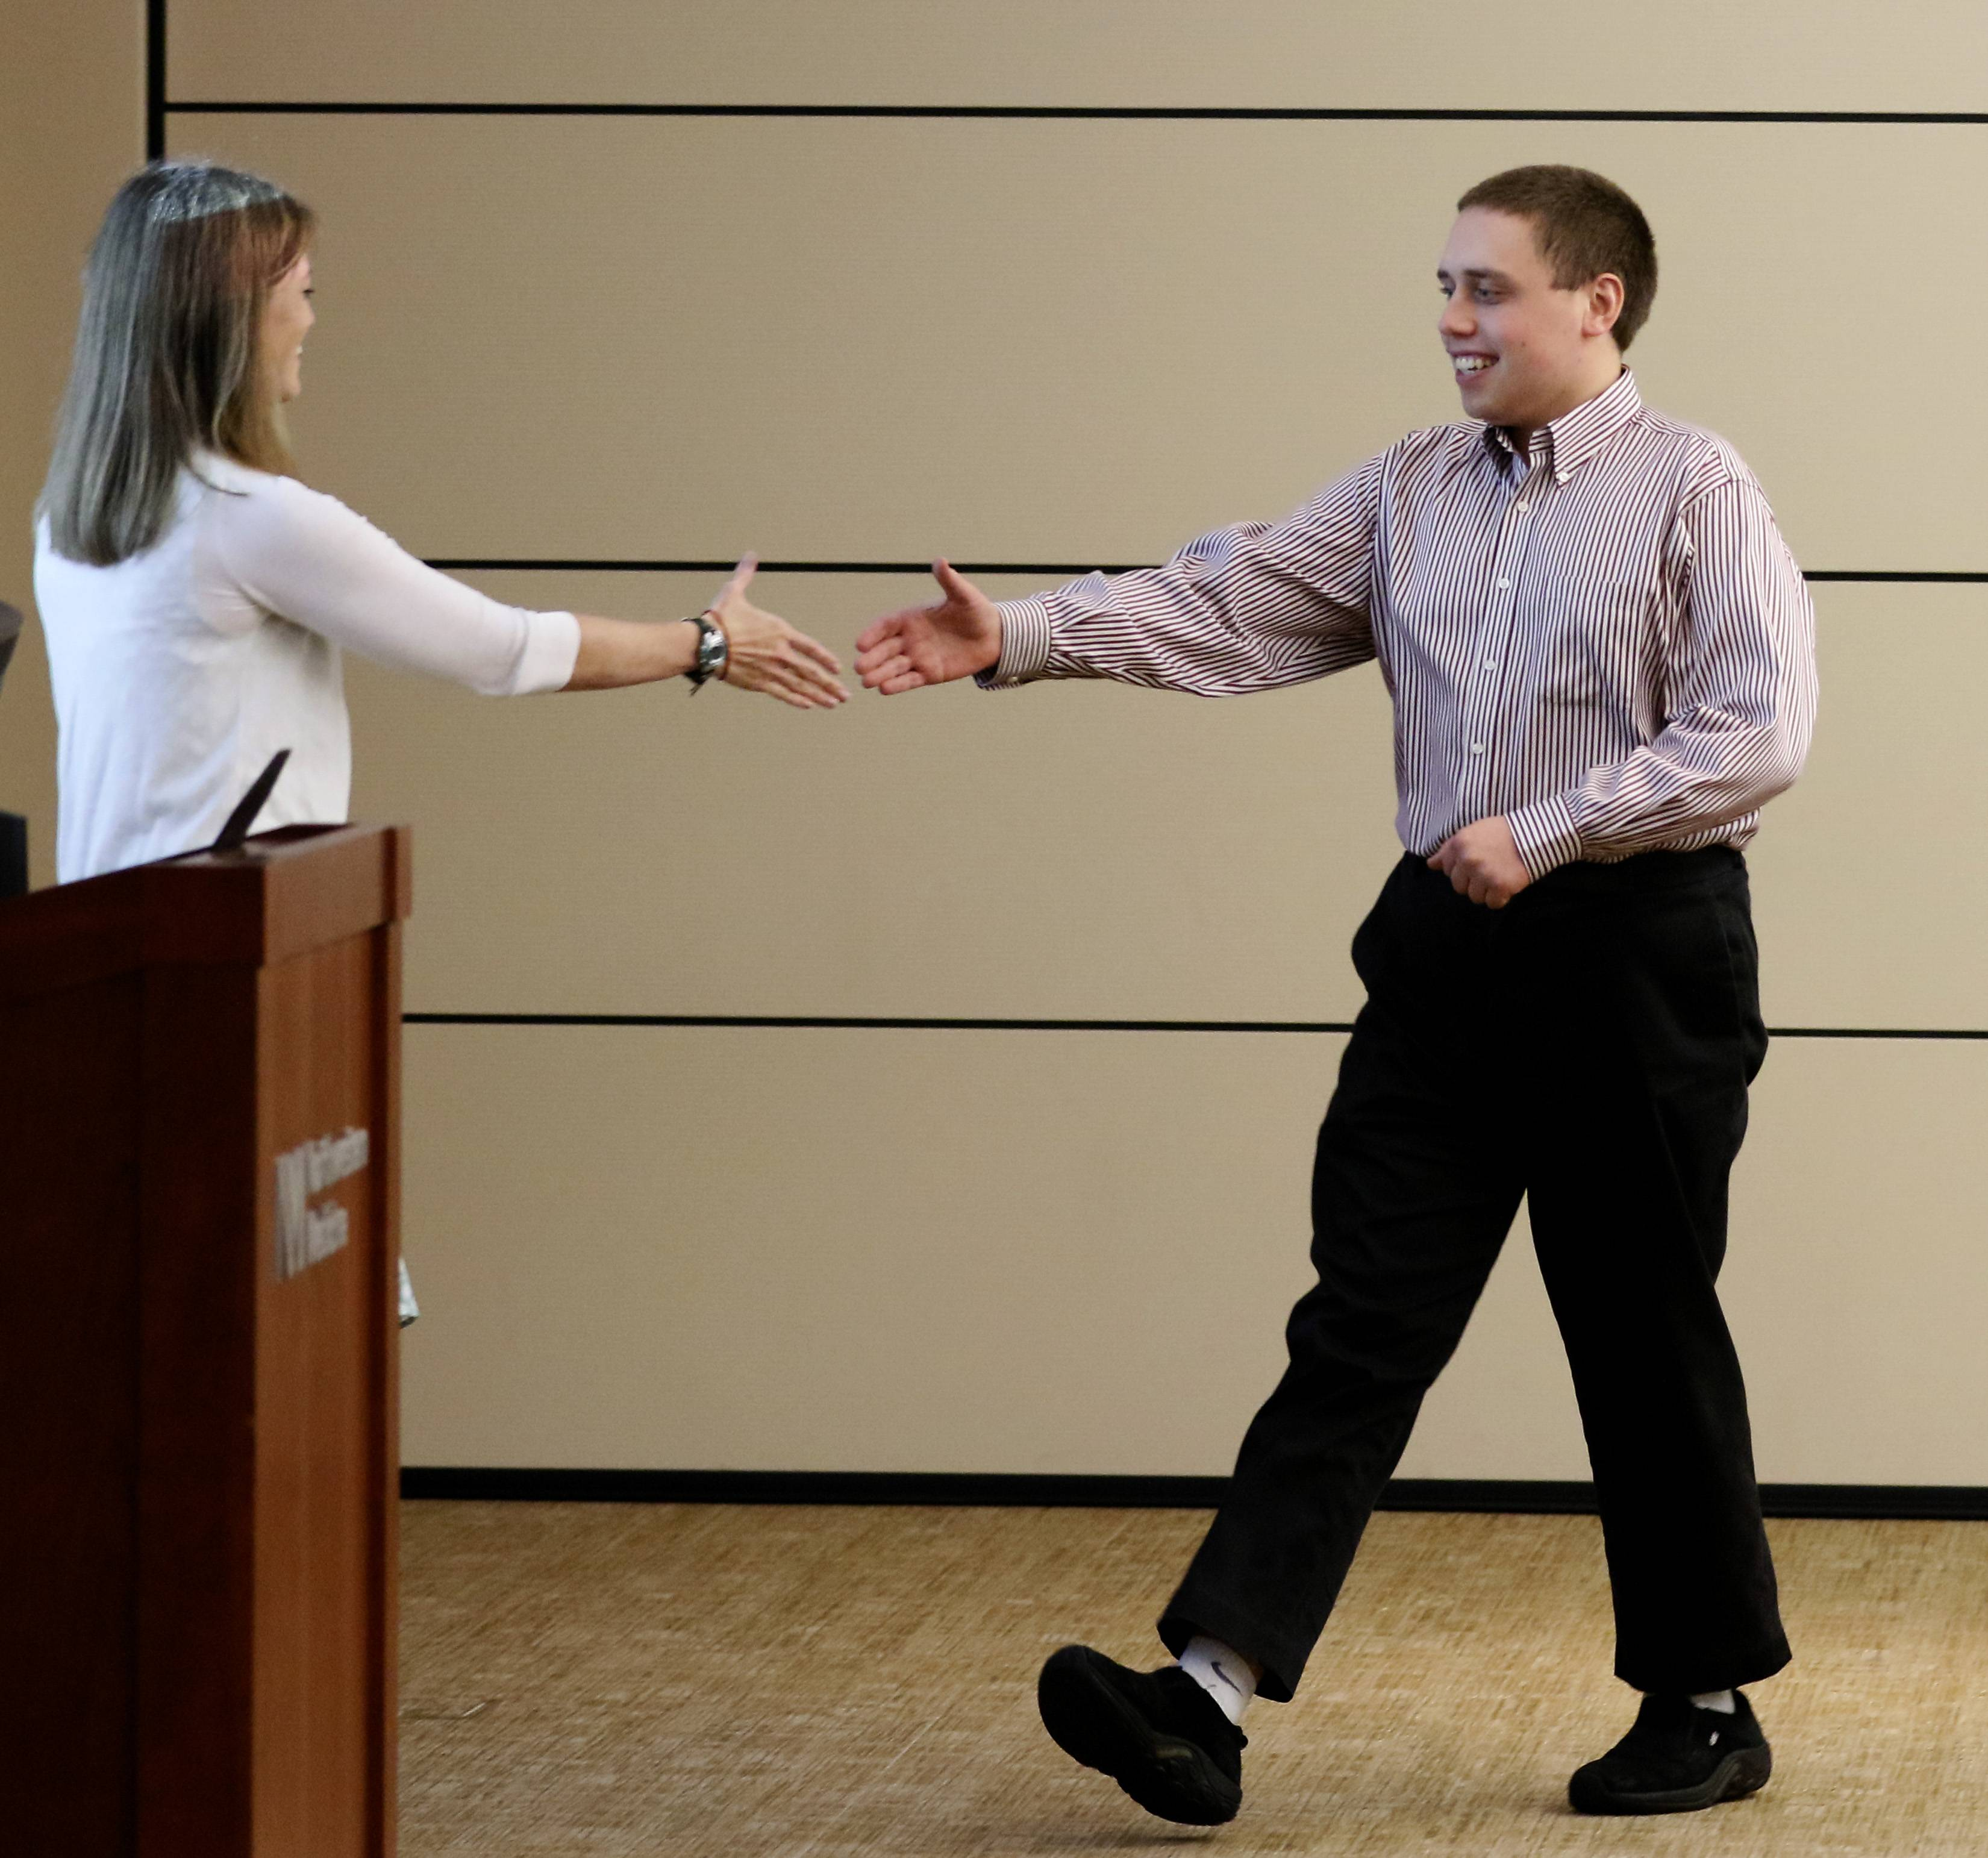 Ben Sojka receives his certificate of completion at a ceremony at Central DuPage Hospital. Sojka, a Lisle 22-year-old who has autism, now works in a cafe at the Morton Arboretum.